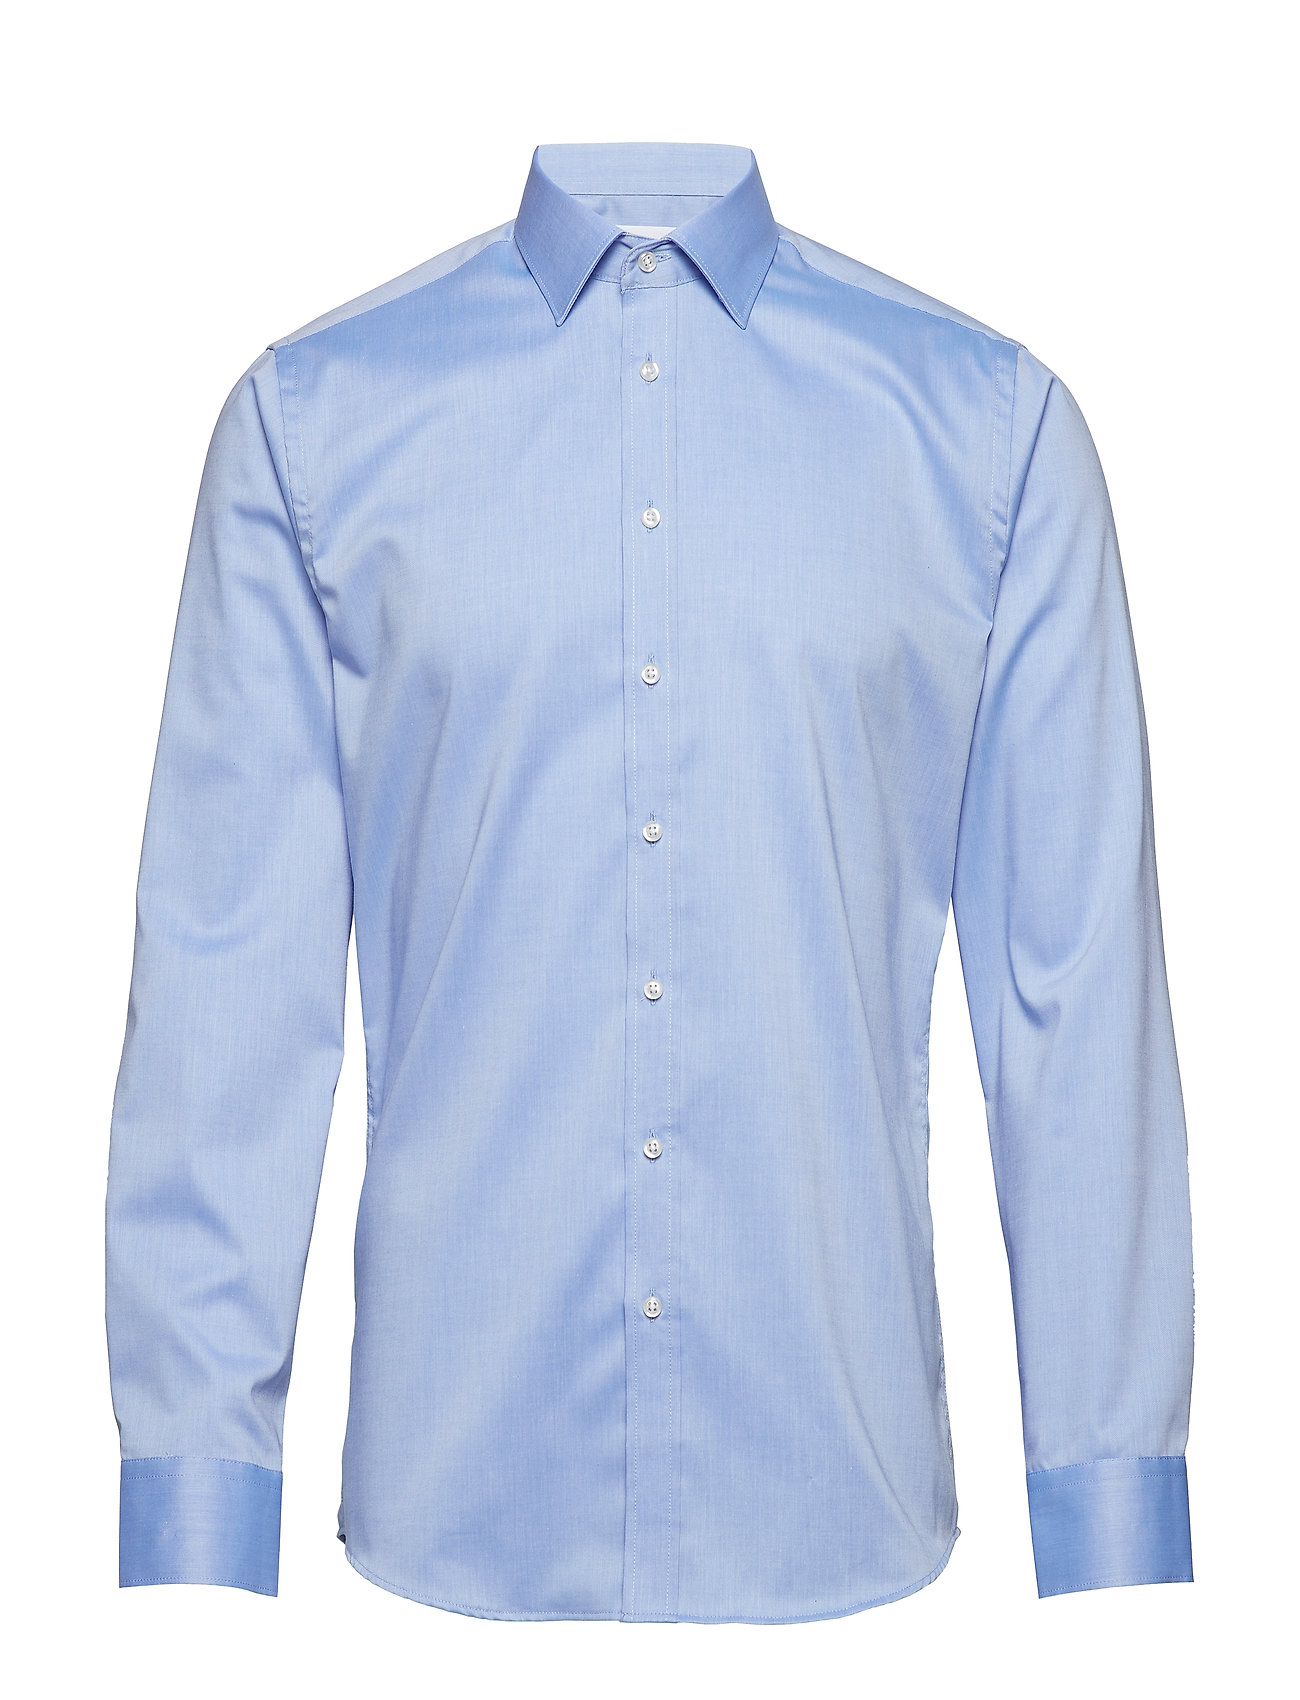 Seven Seas Copenhagen Fine Twill - Slim Fit - LIGHT BLUE